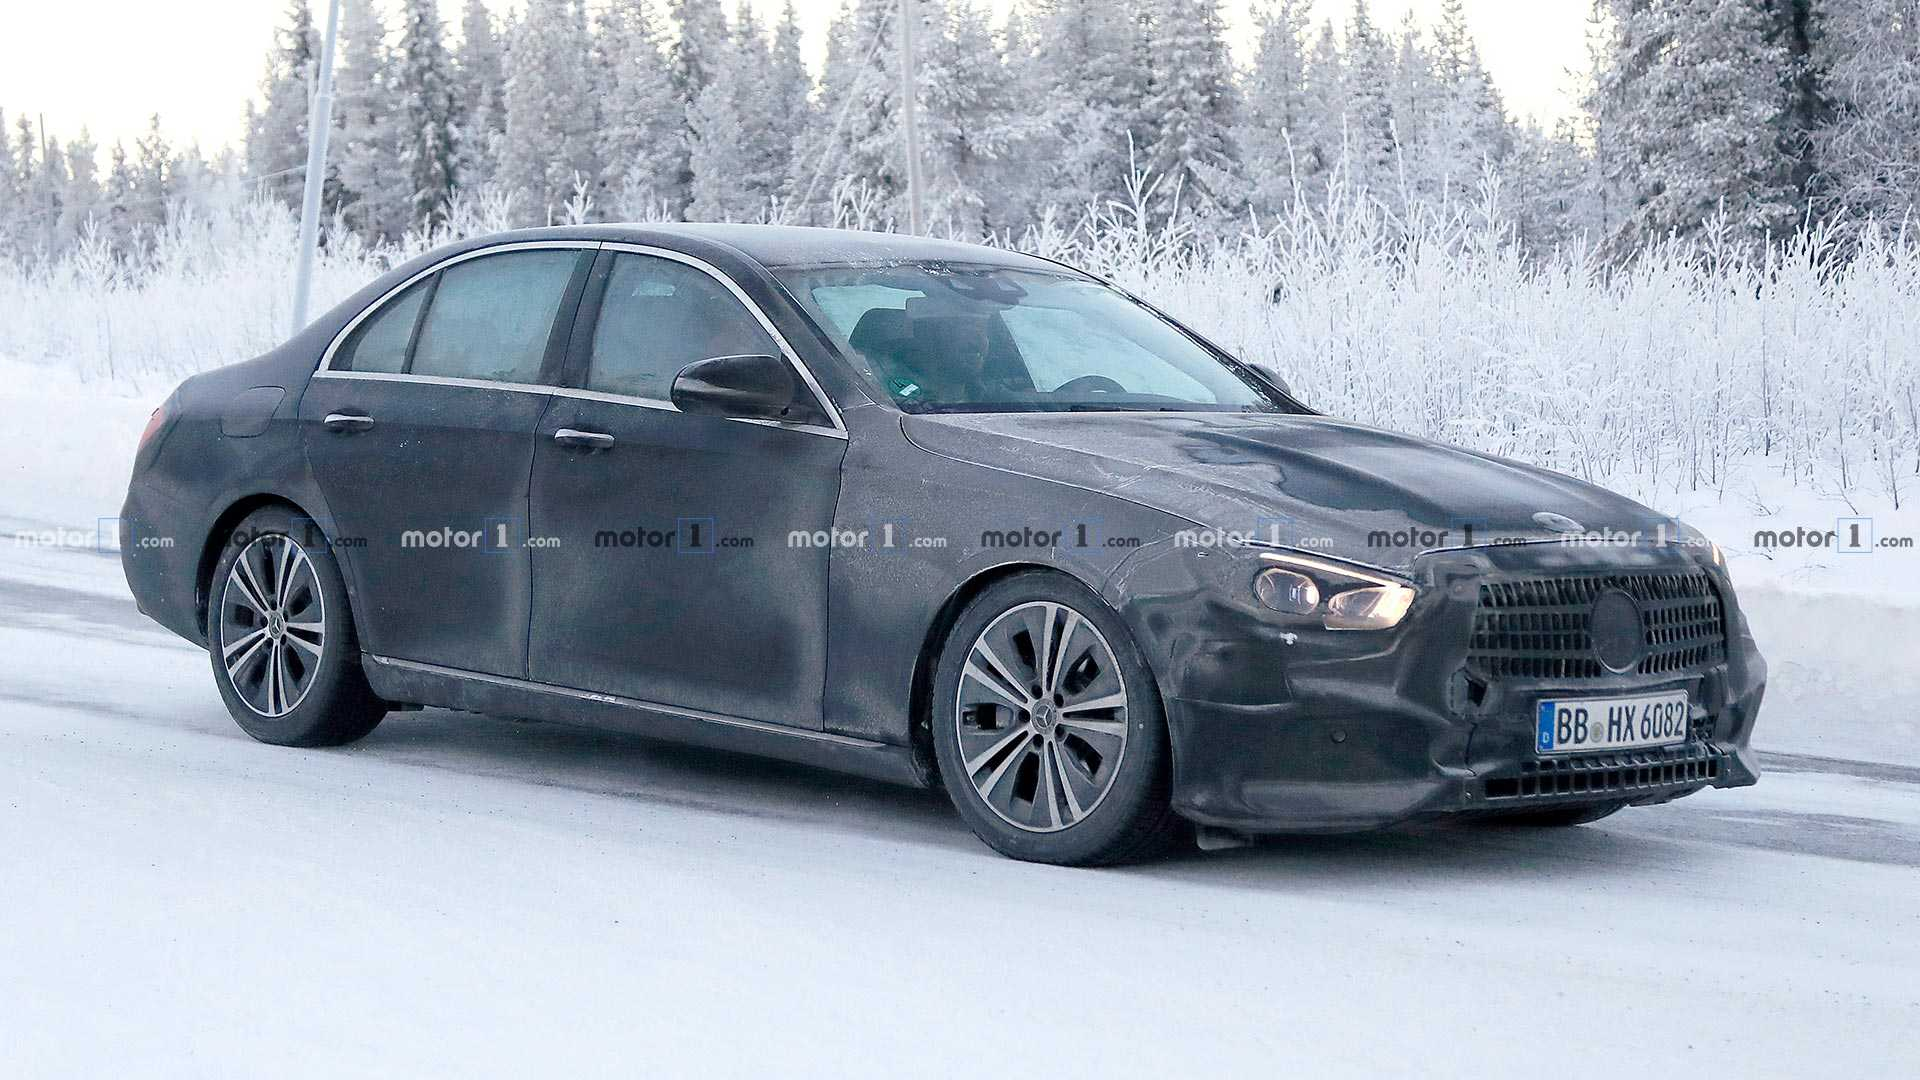 22 The Spy Shots Mercedes E Class Price Design And Review